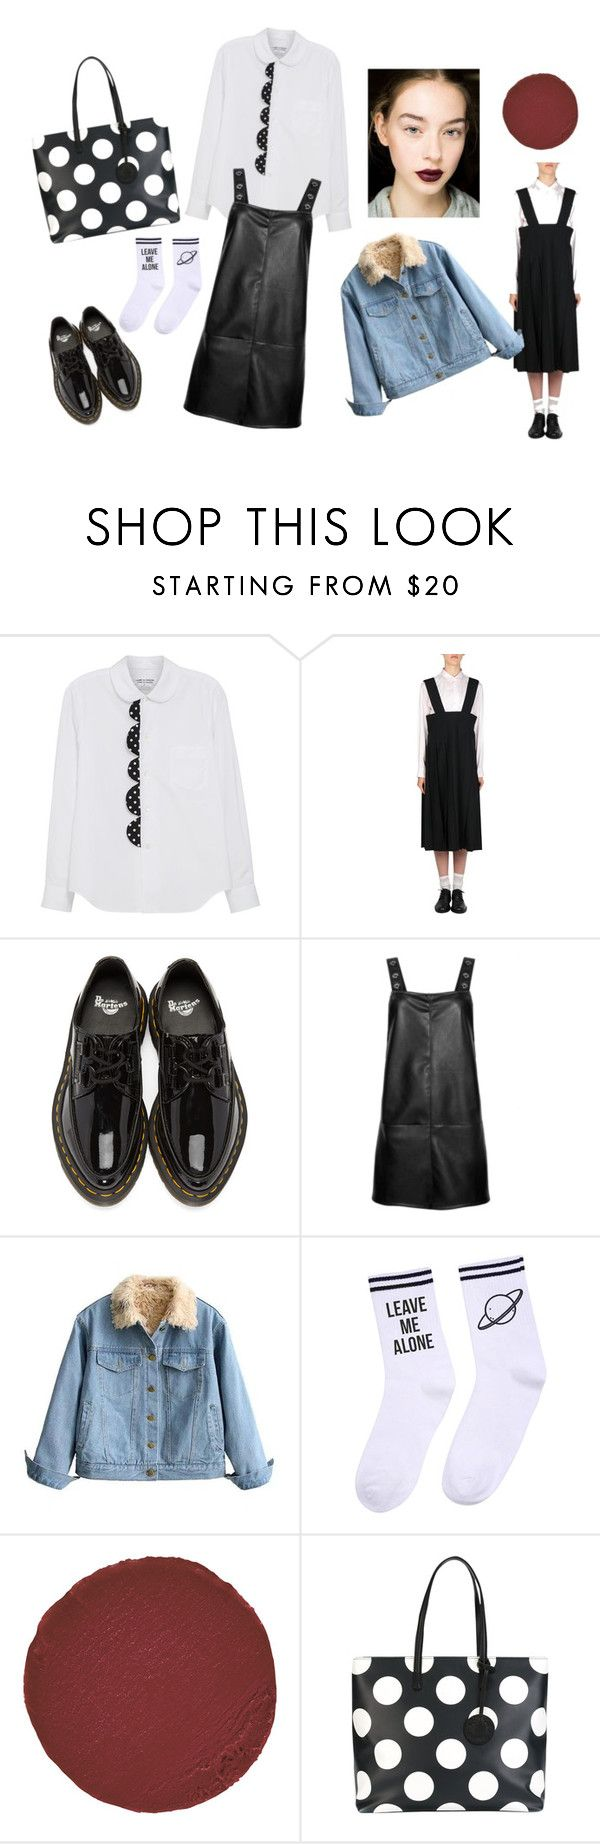 """#untitled"" by yuna92 on Polyvore featuring Comme des Garçons, Dr. Martens, Chicnova Fashion, Yeah Bunny, Christian Louboutin and Moschino"